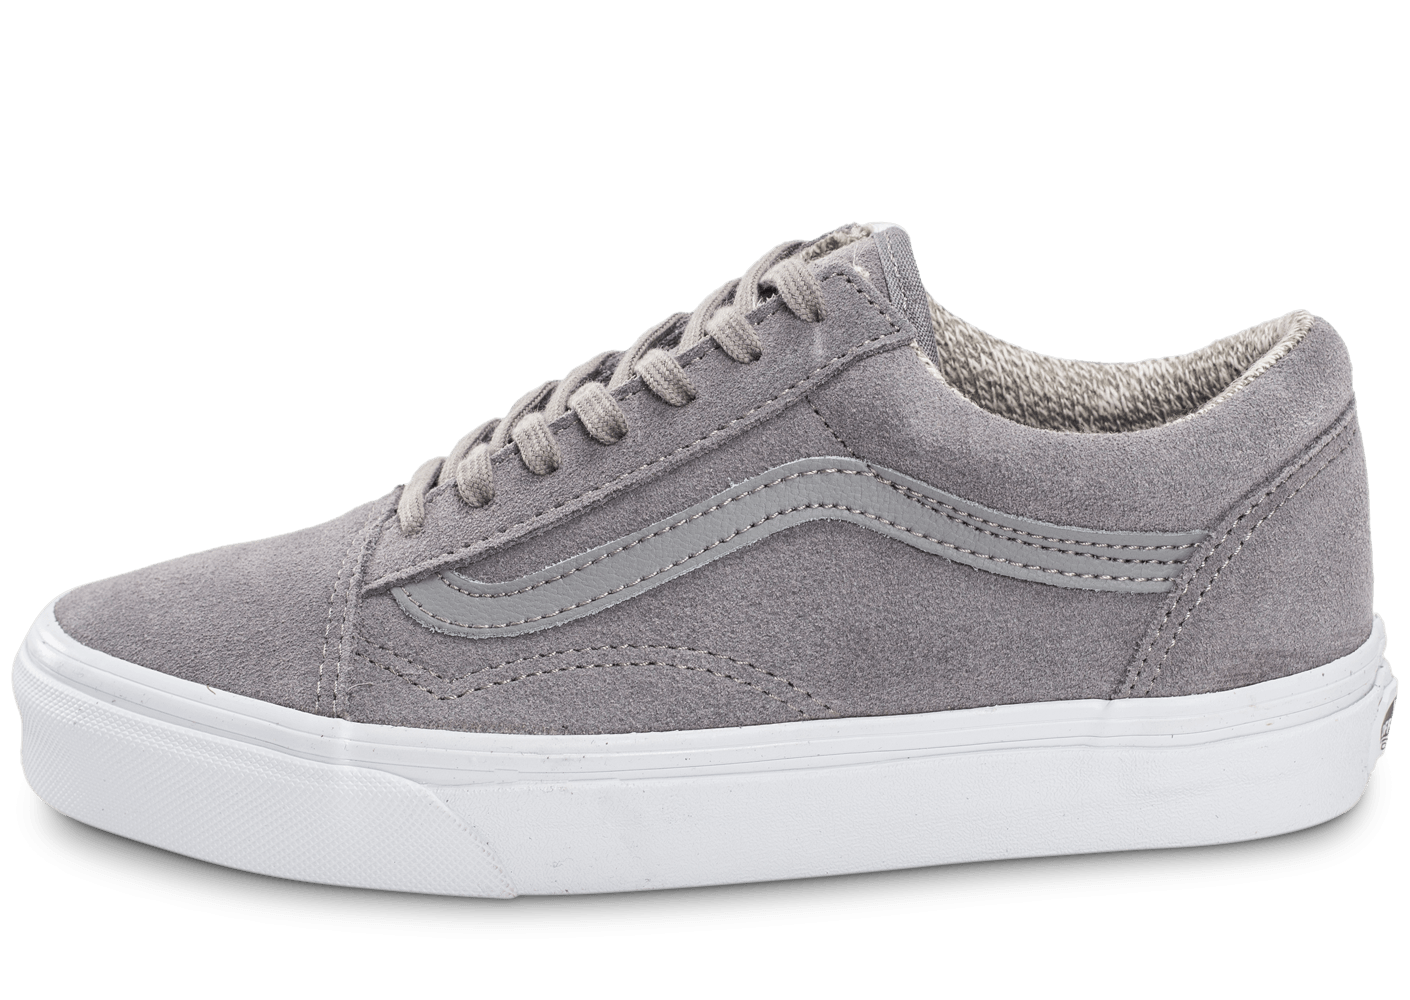 Vans OLD SKOOL gris